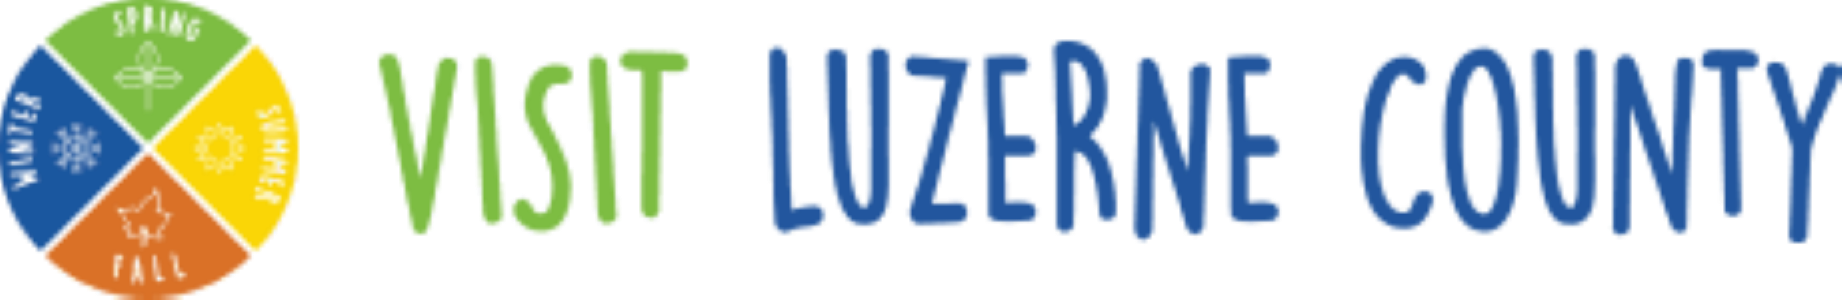 Luzerne County Tourist Board